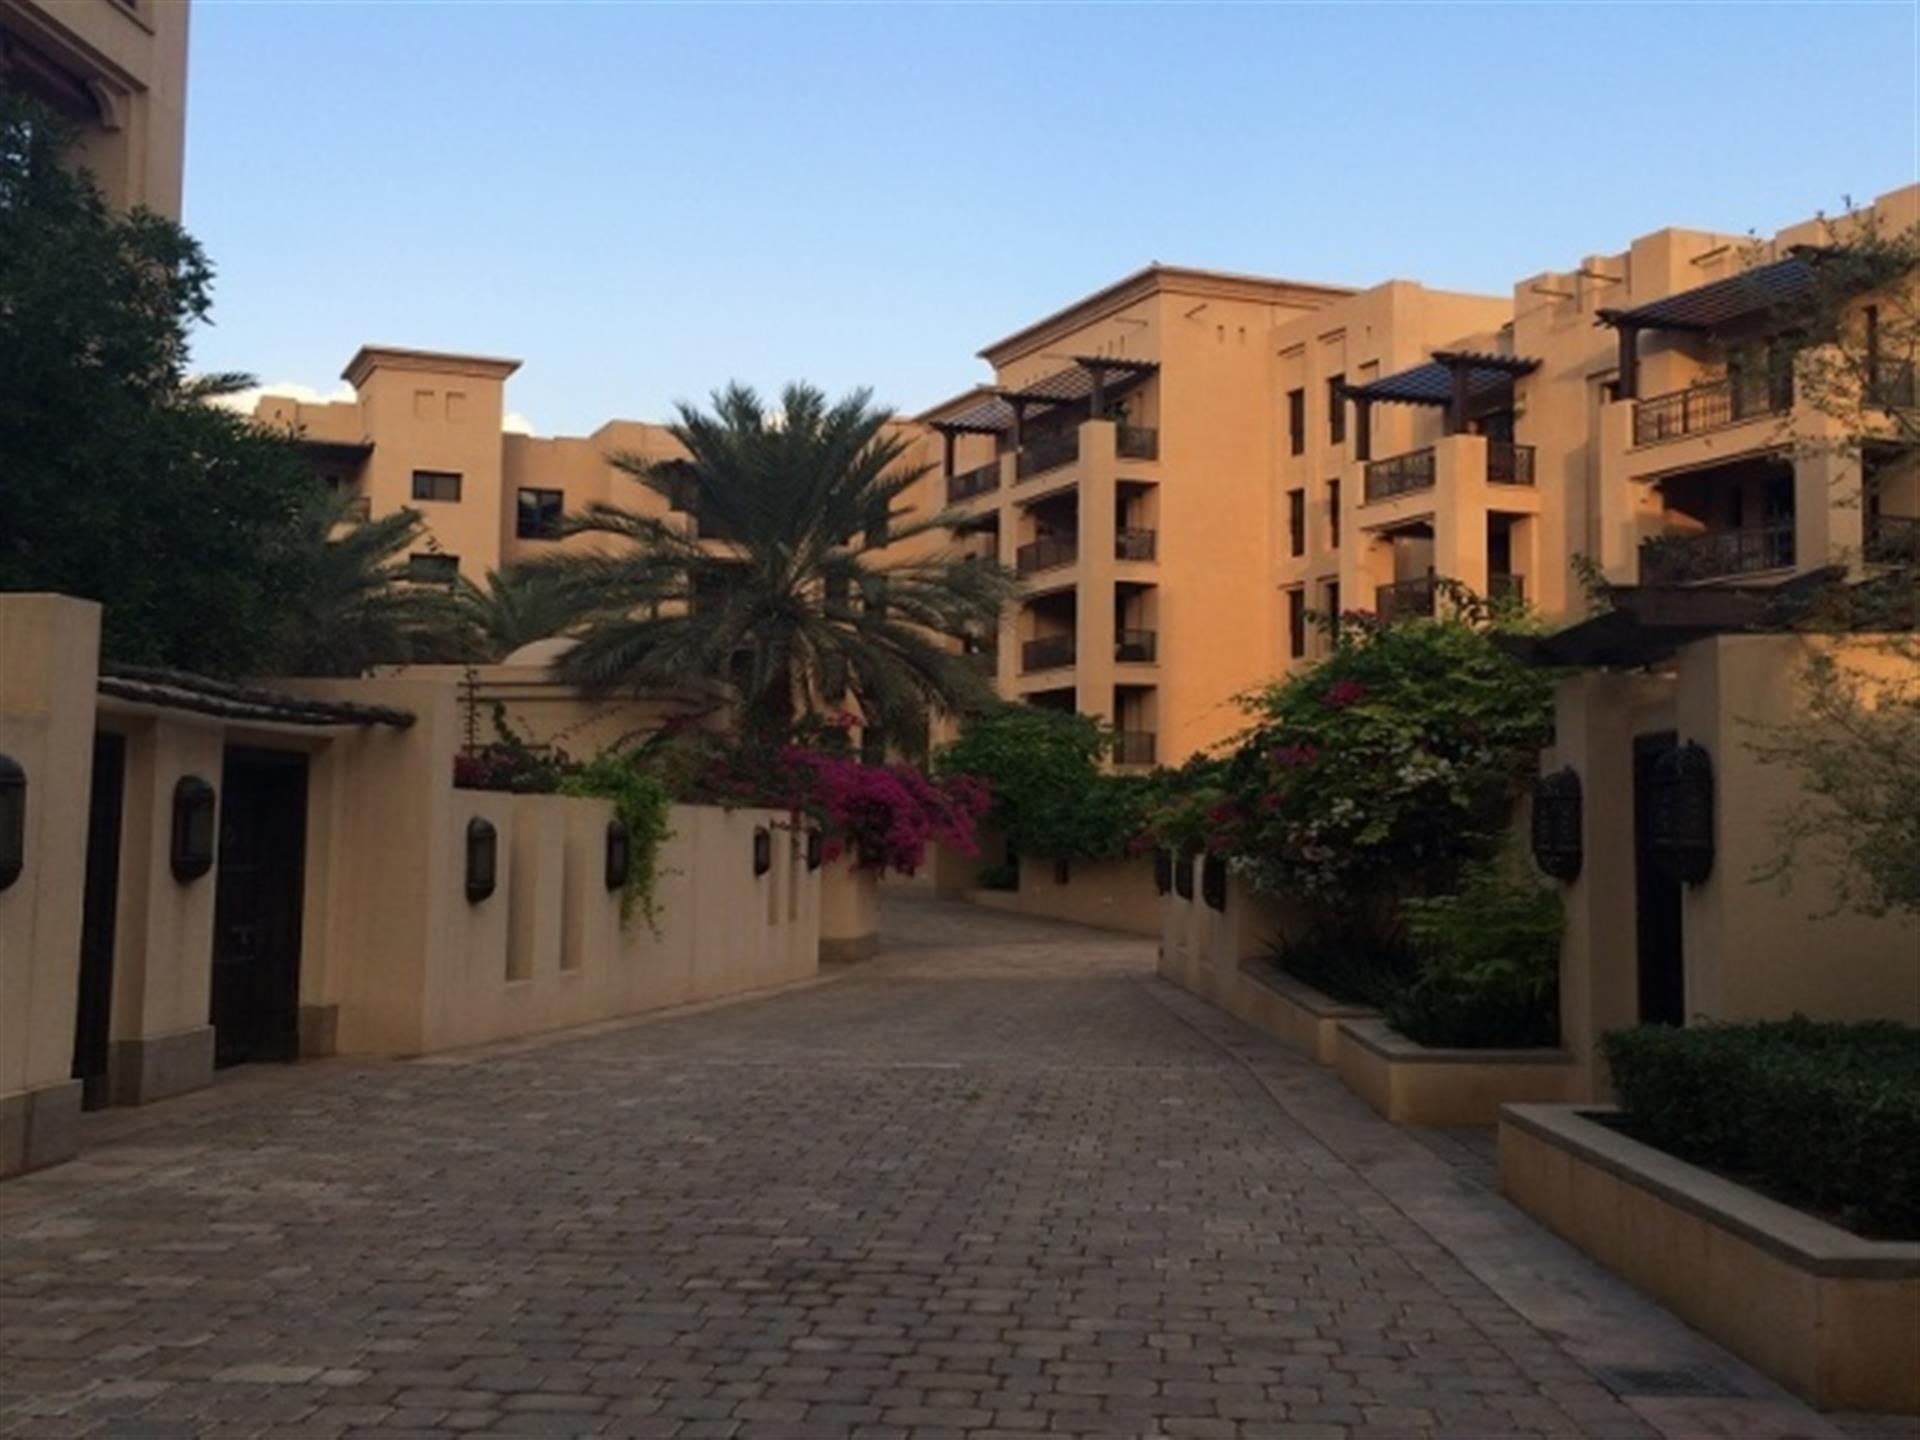 Residential Apartment/Condo, for Sale in United Arab Emirates, Dubai, Old Town